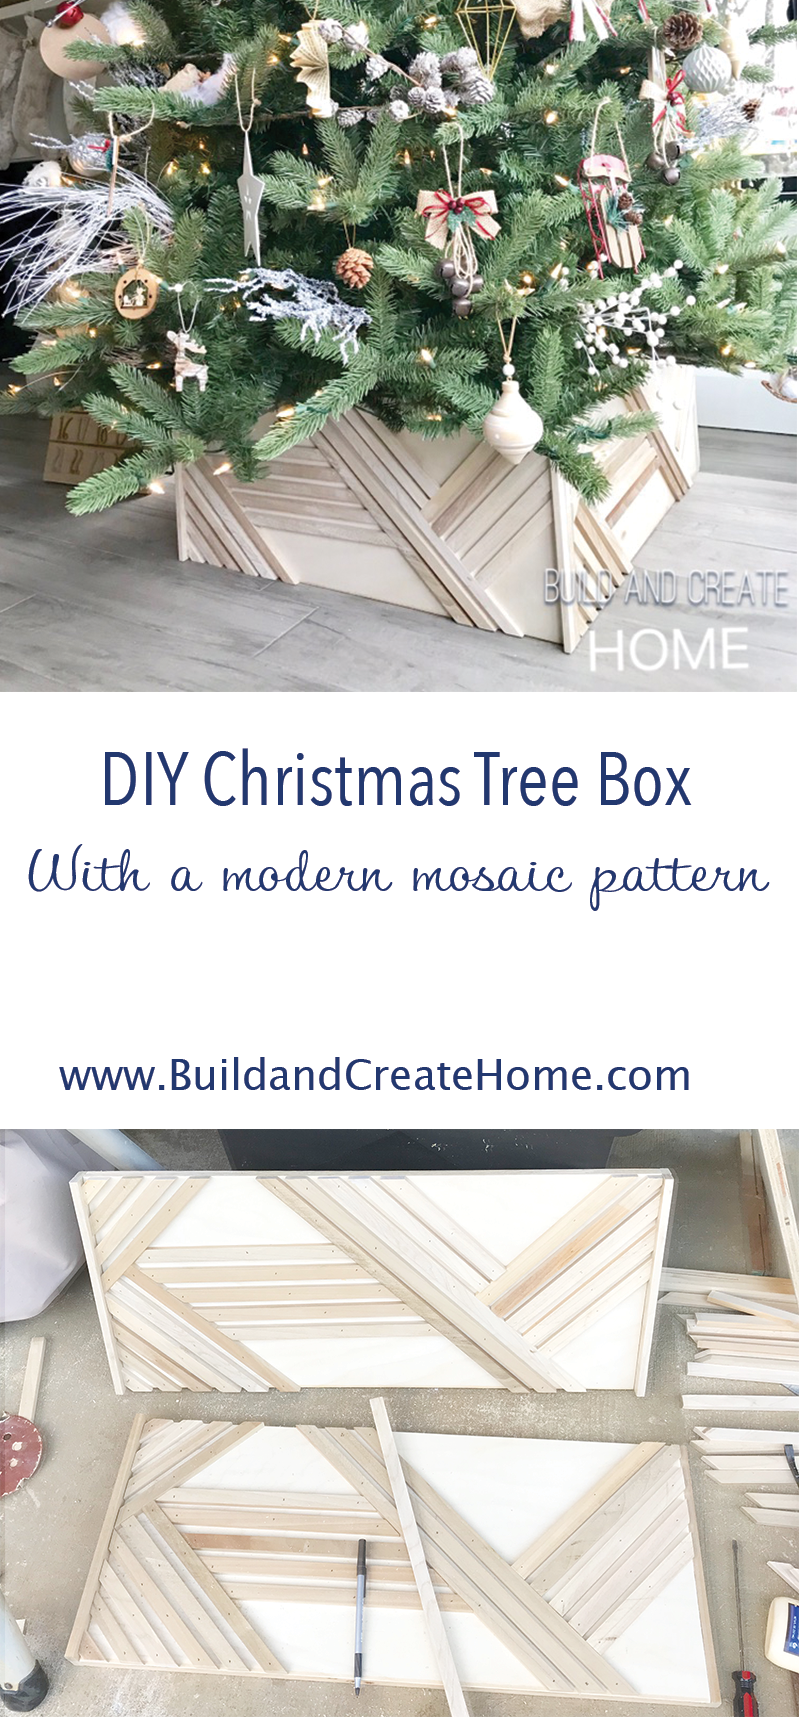 How to build a modern mosaic Christmas Tree box